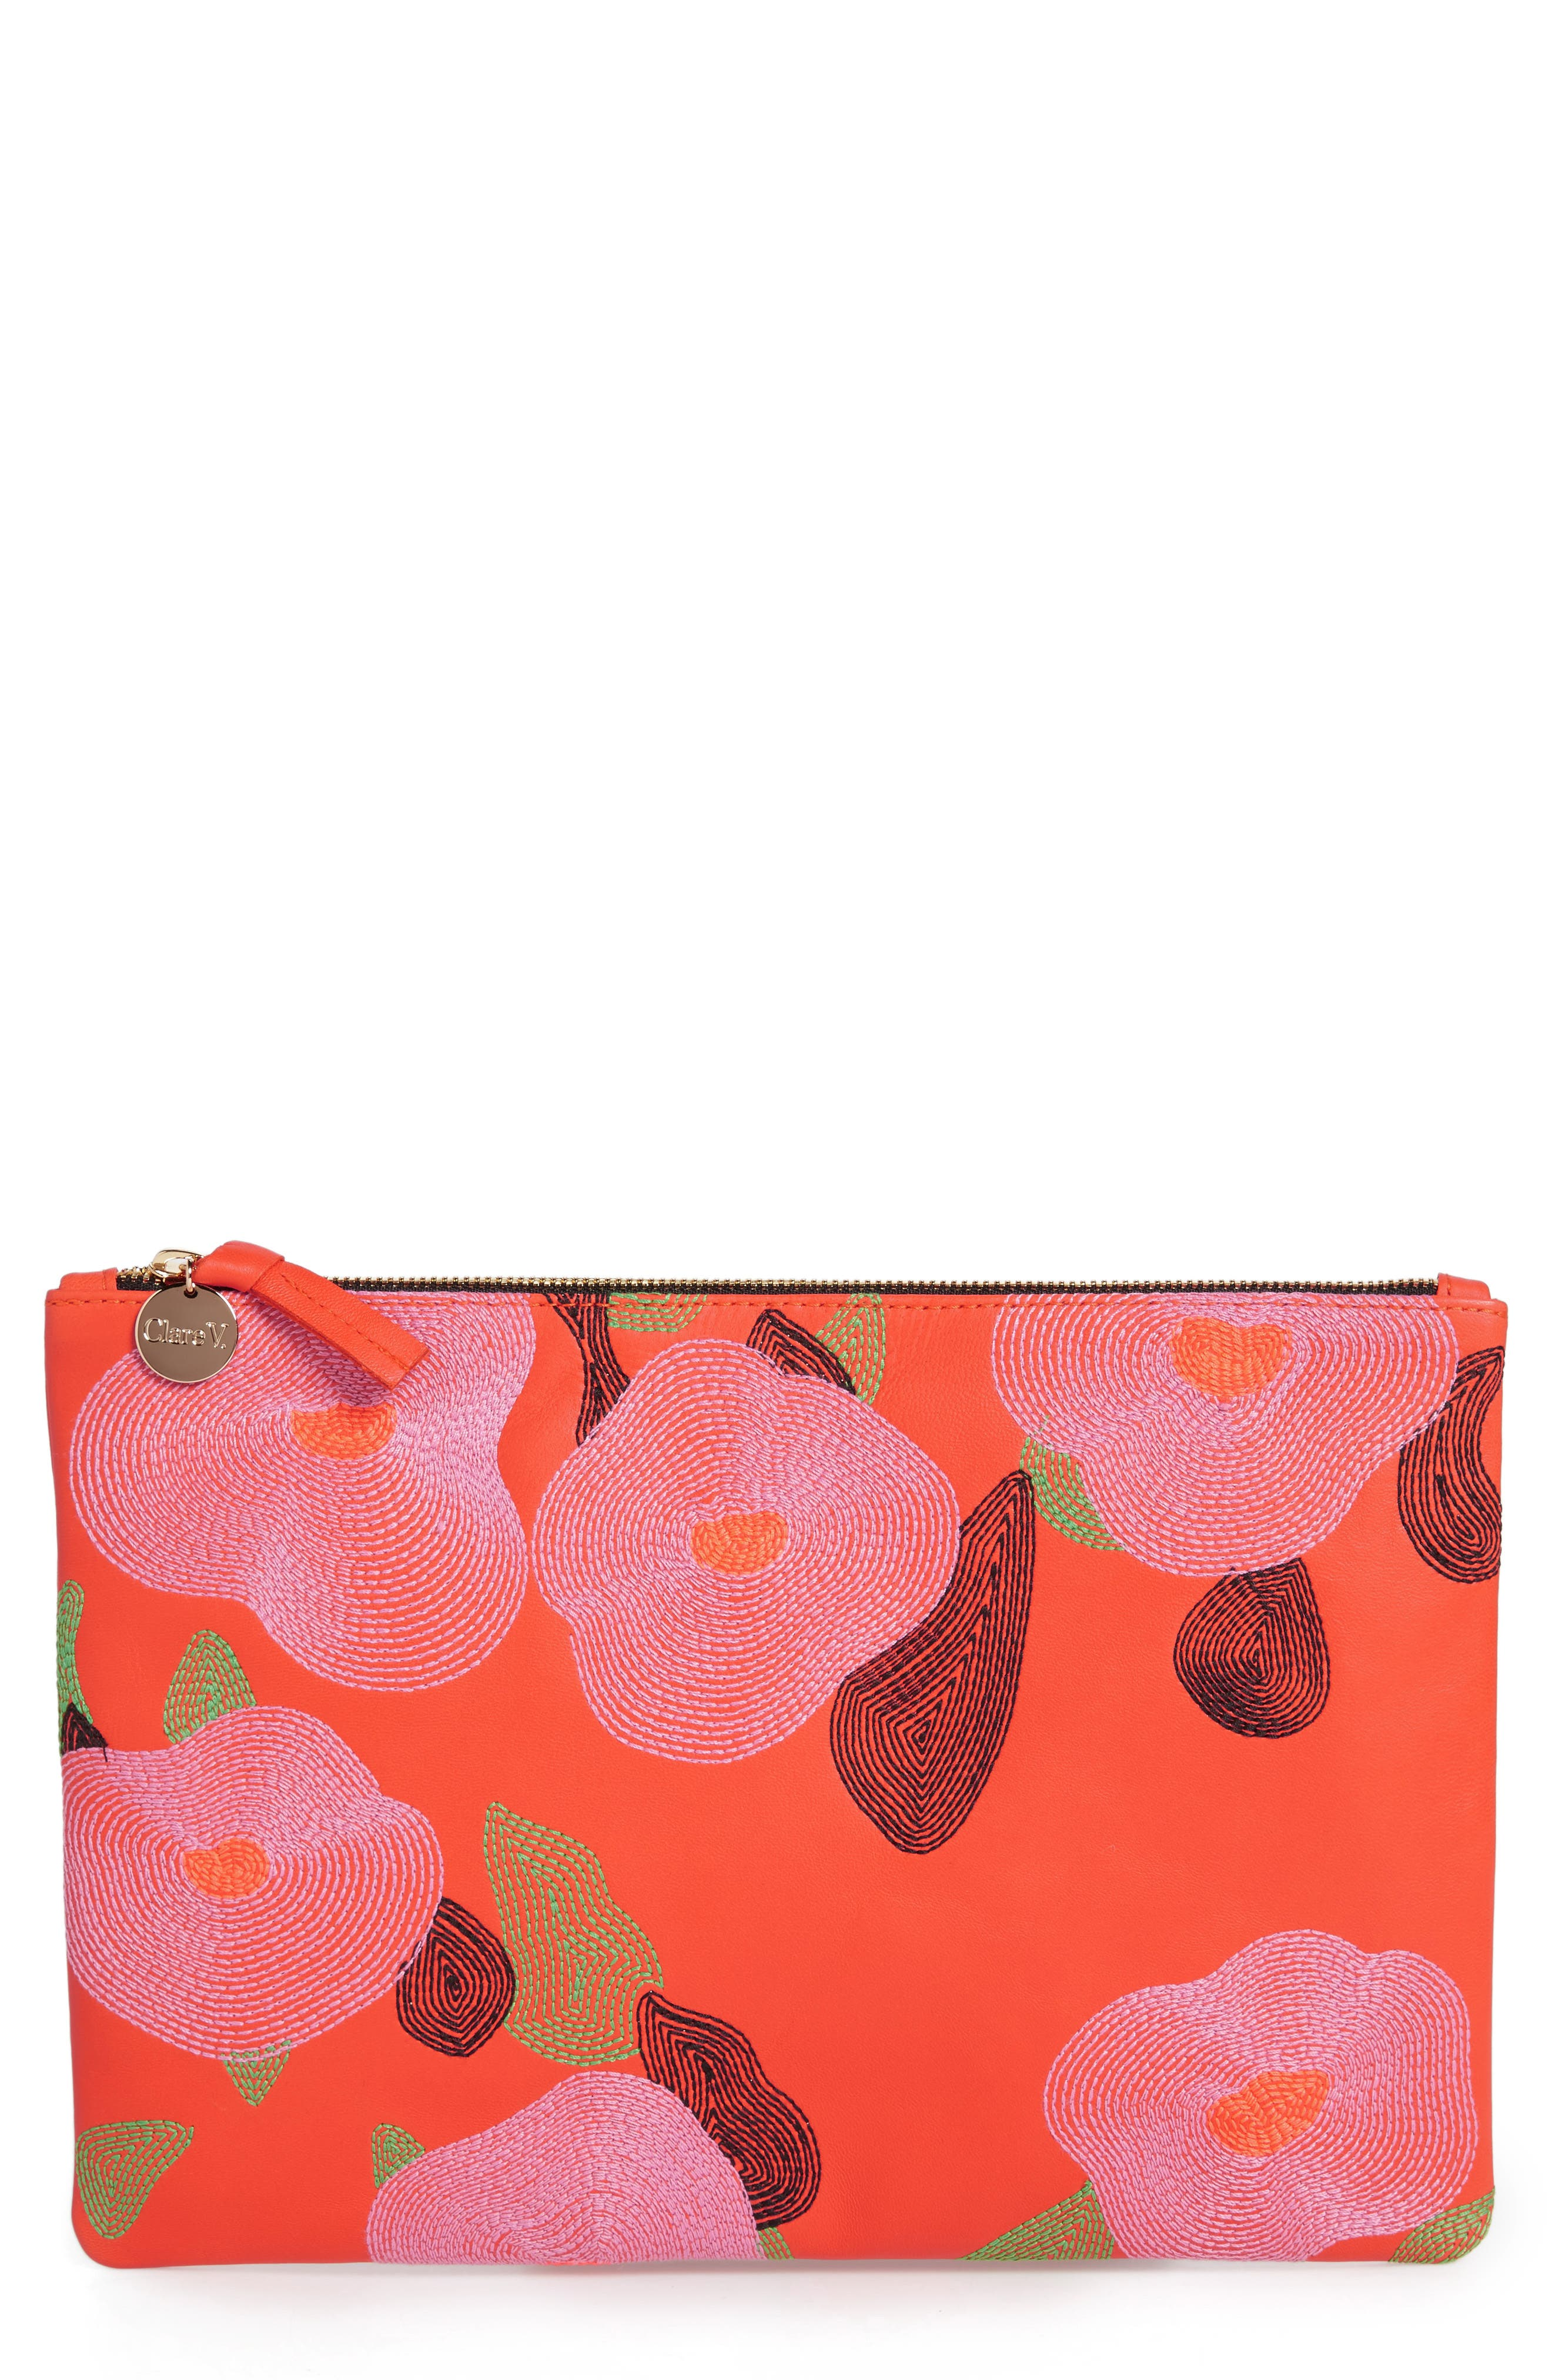 Main Image - Clare V. Embroidered Poppy Leather Flat Clutch